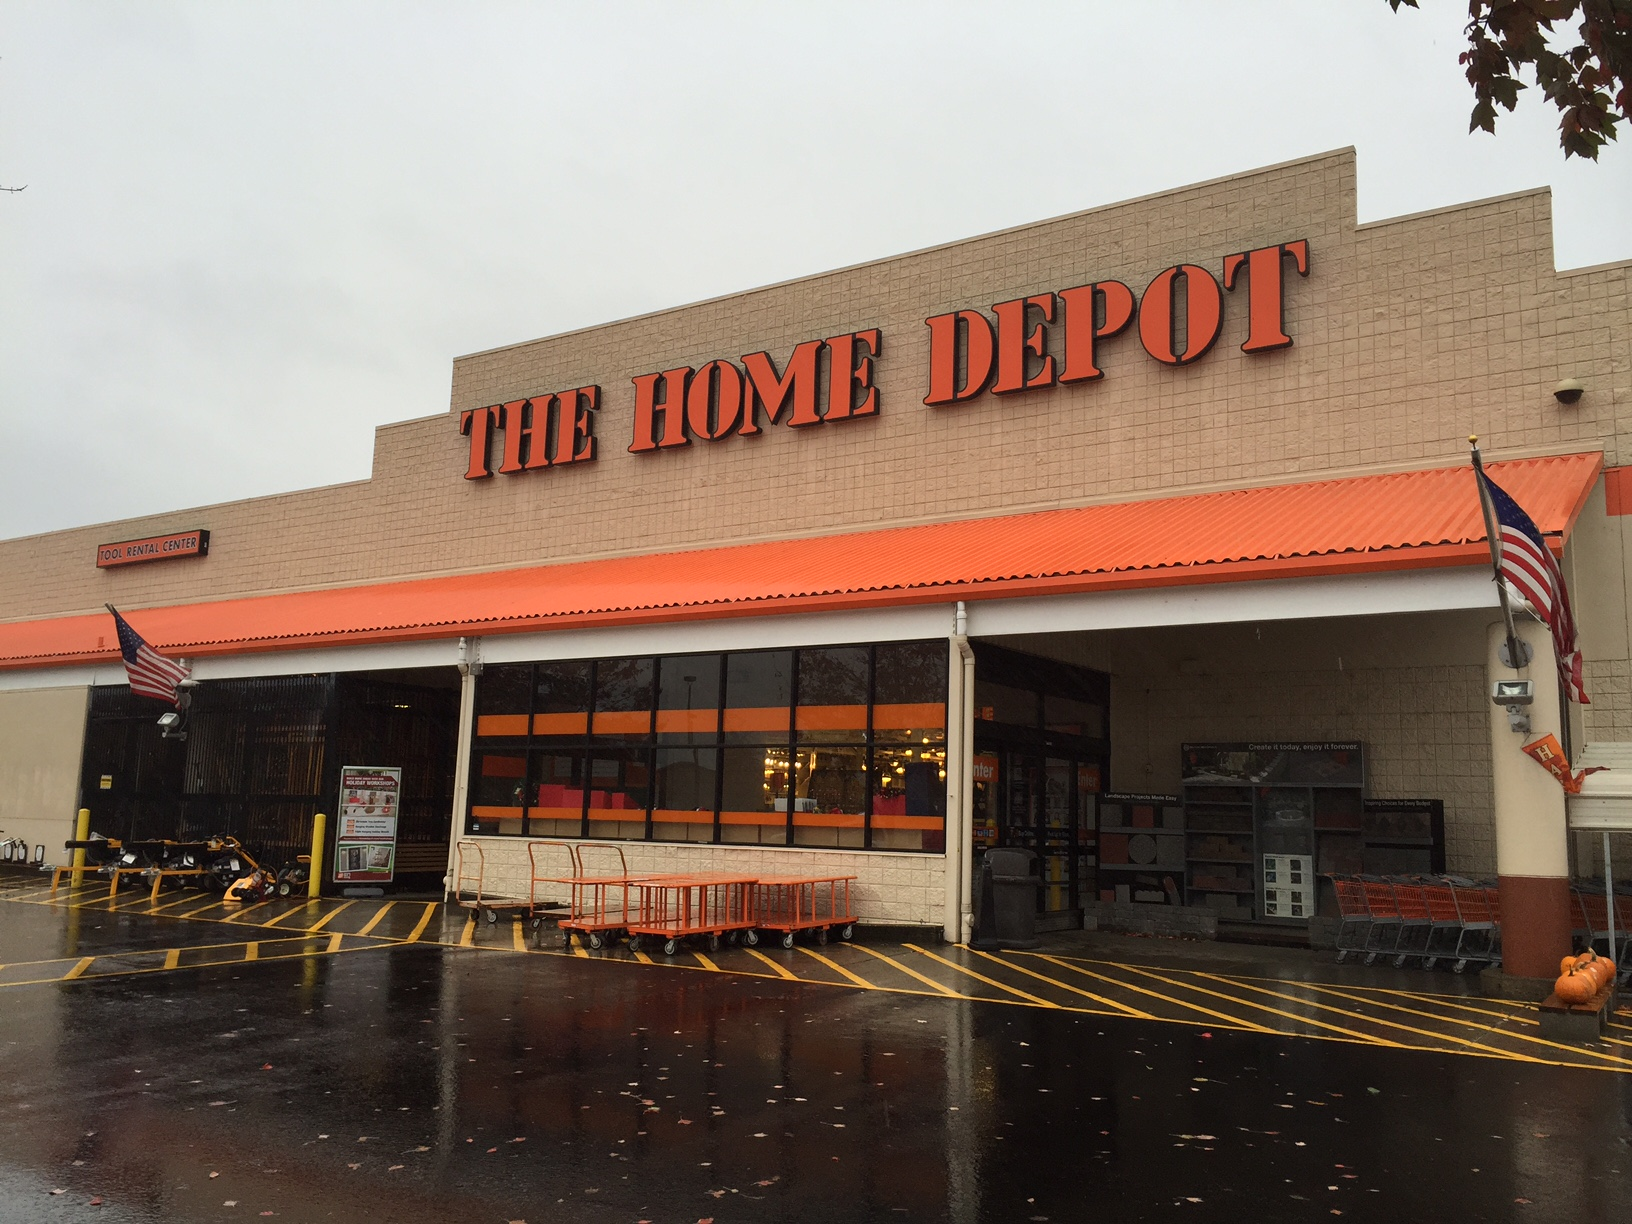 The Home Depot 3795 Hagers Grove Rd SE Salem, OR Hardware